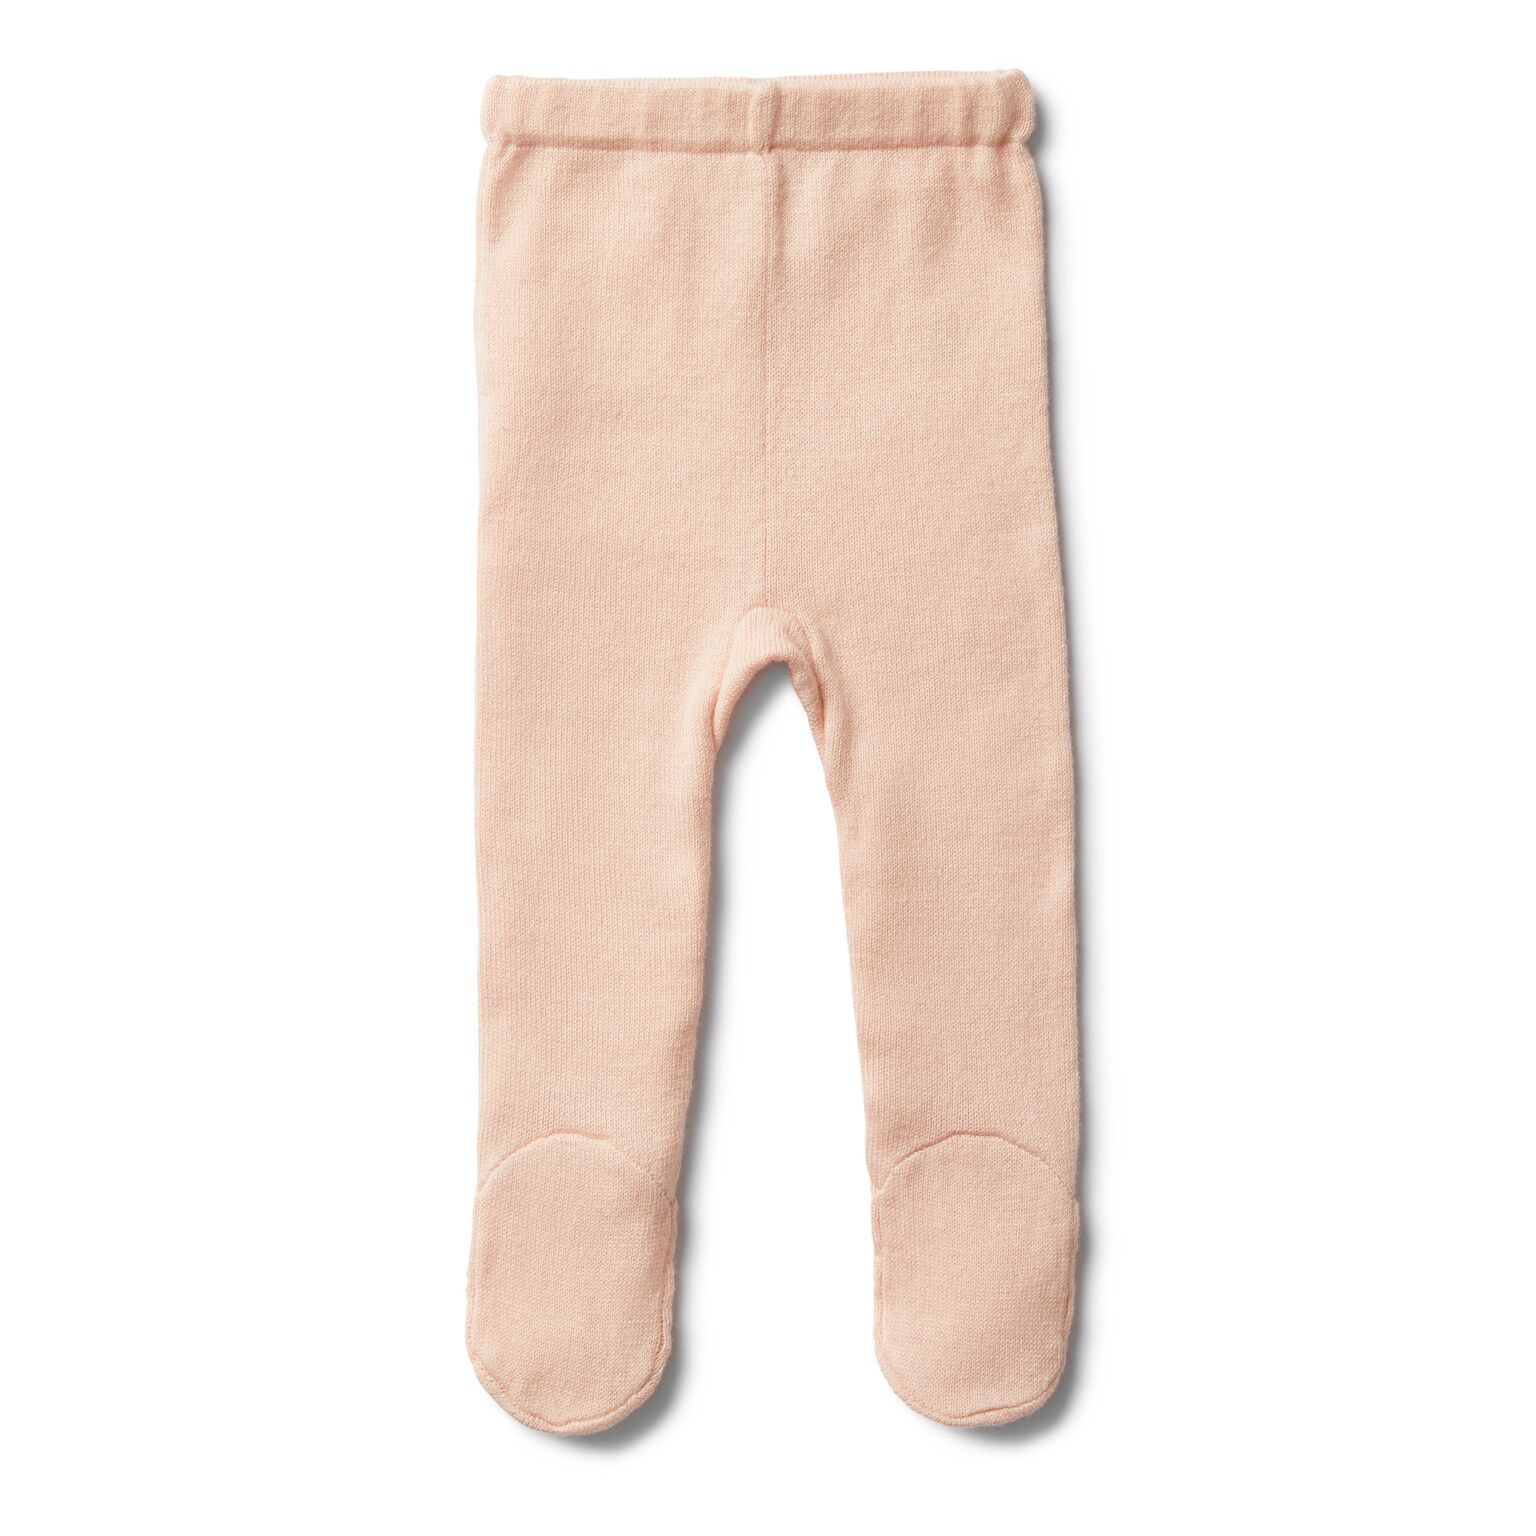 WF Peachy pink knitted legging with feet